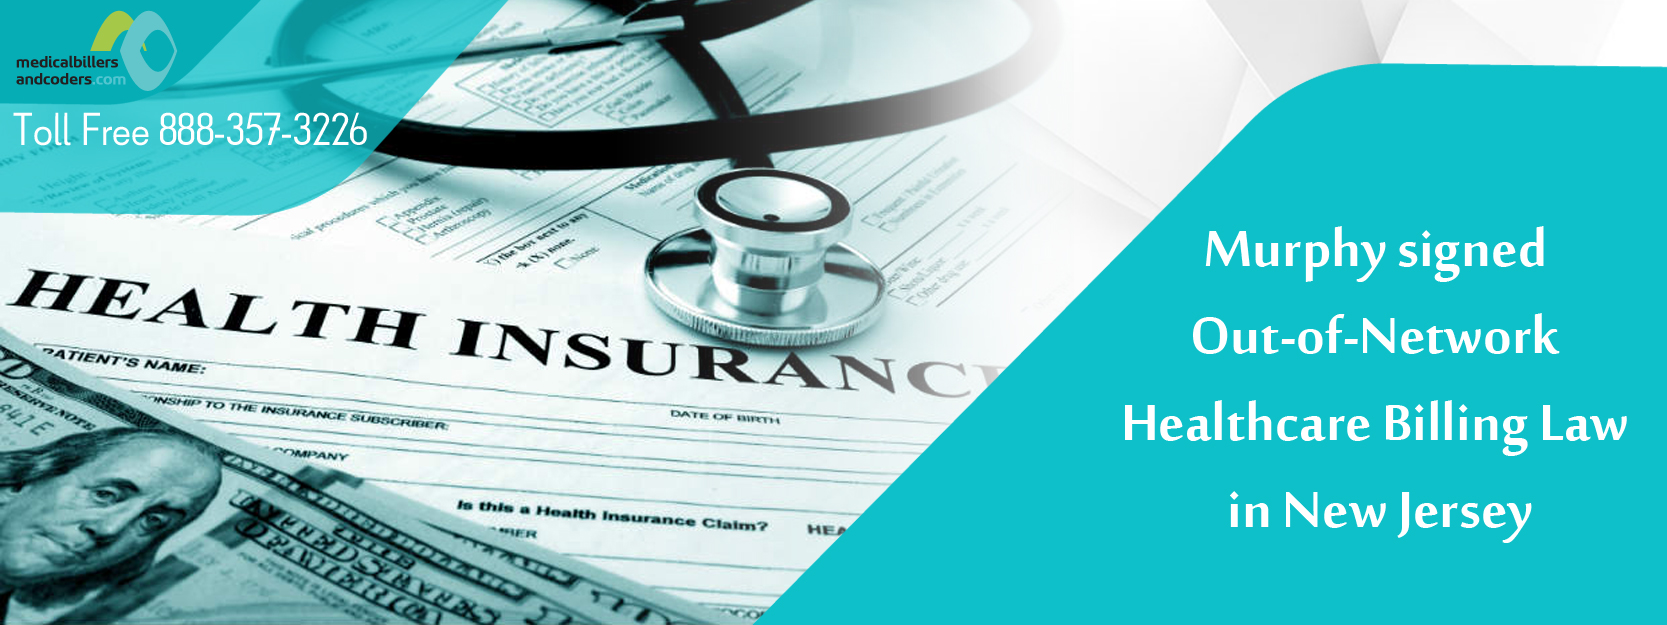 Murphy signed Out-of-Network Healthcare Billing Law in New Jersey